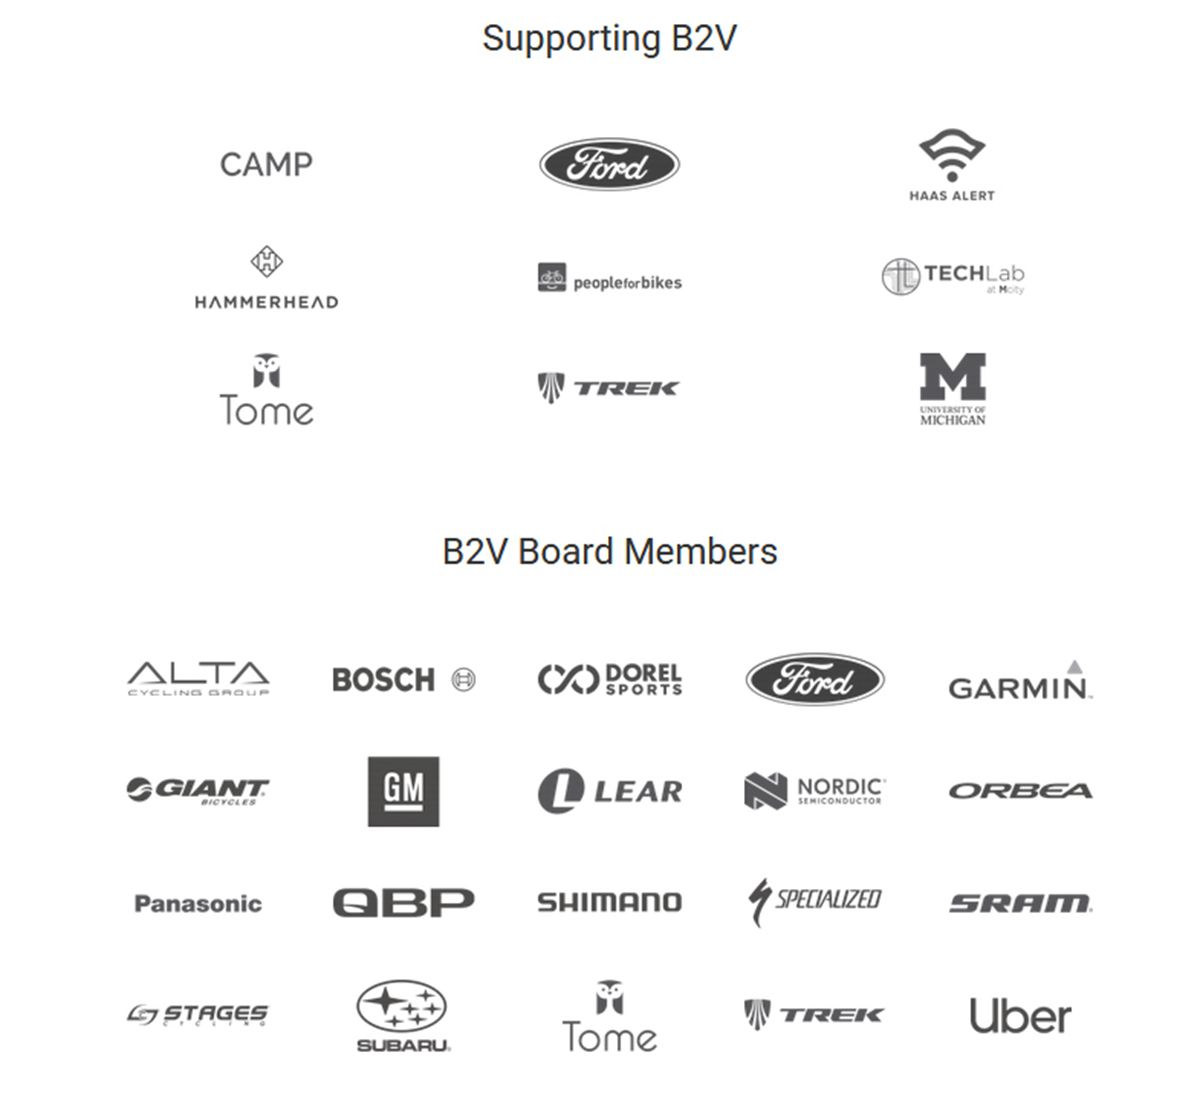 B2V-Tome-Software-companies-involved-on-board-and-product-team.jpg